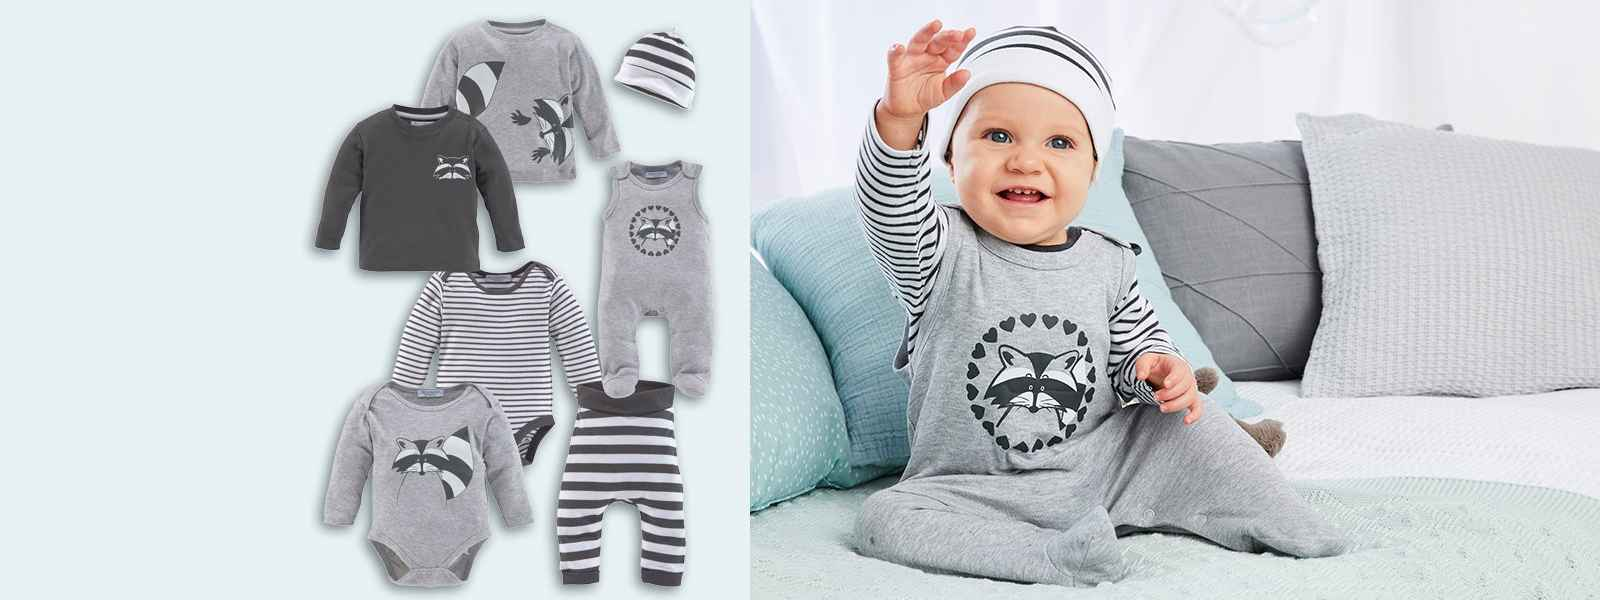 Baby-Sets